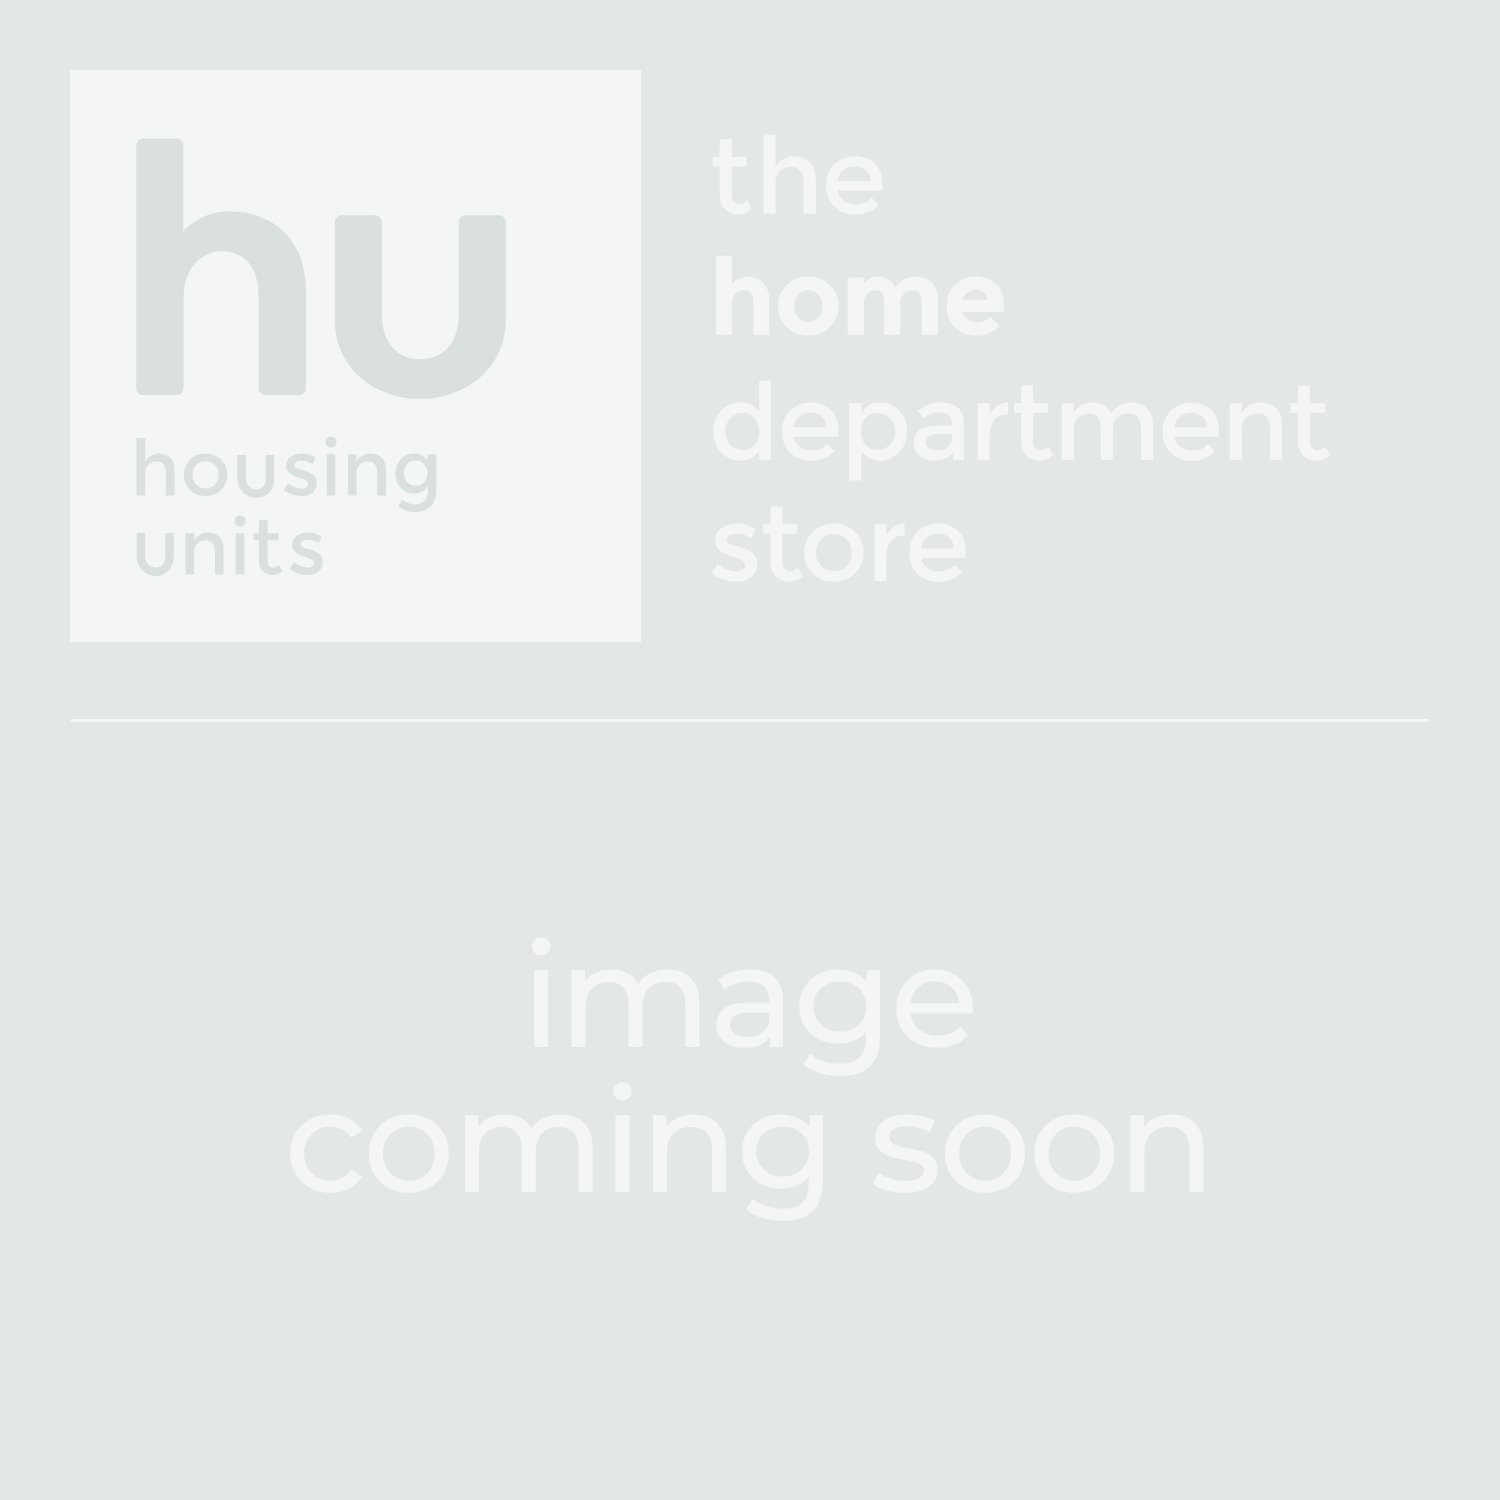 Celsi Electriflame XD Signature Silver and Chrome Inset Electric Fire - Lifestyle | Housing Units